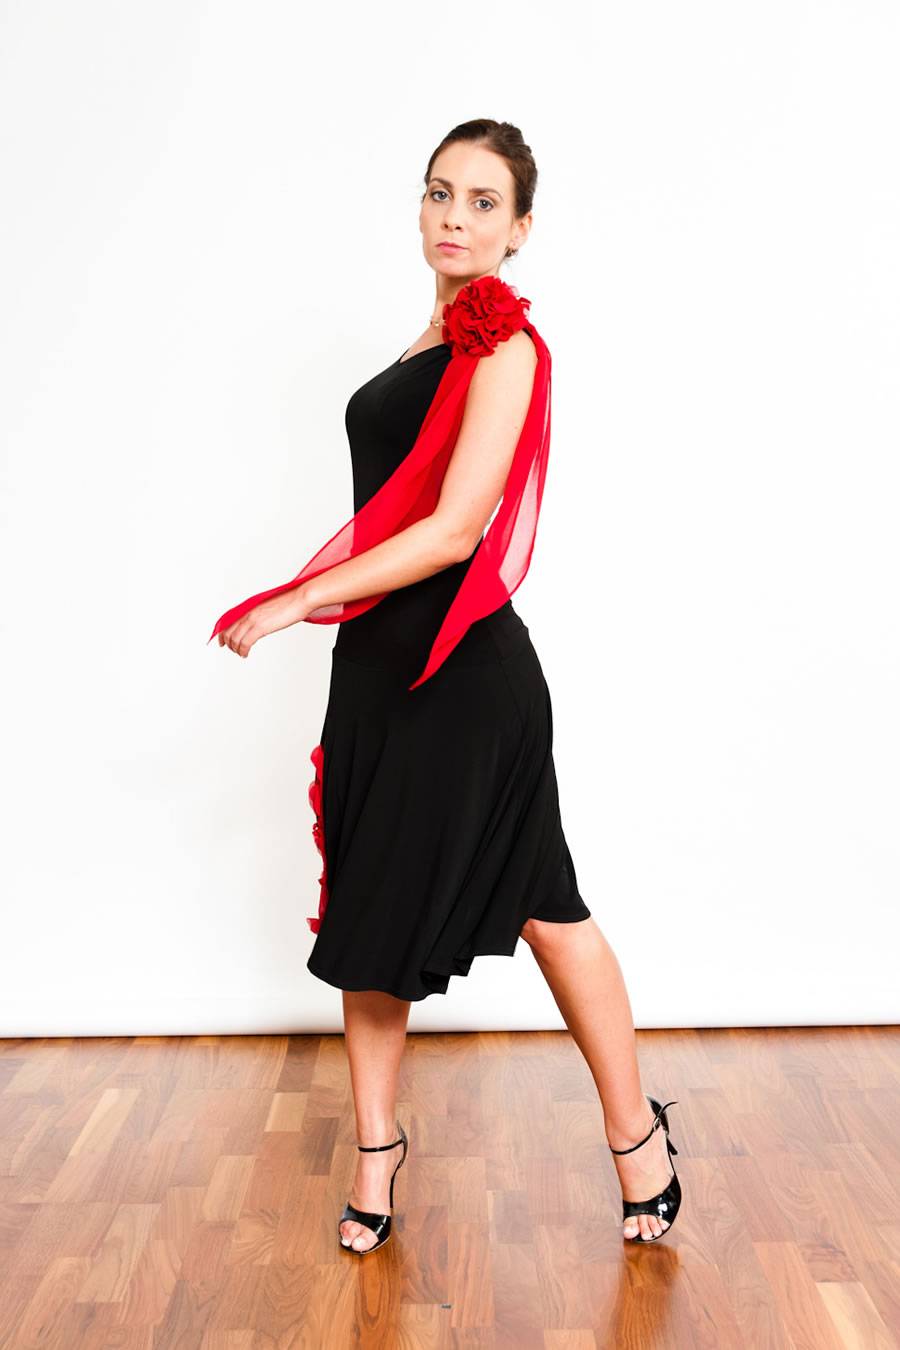 Tango Clothing, Dresses & Fashion Made in the UK | Bloom ...